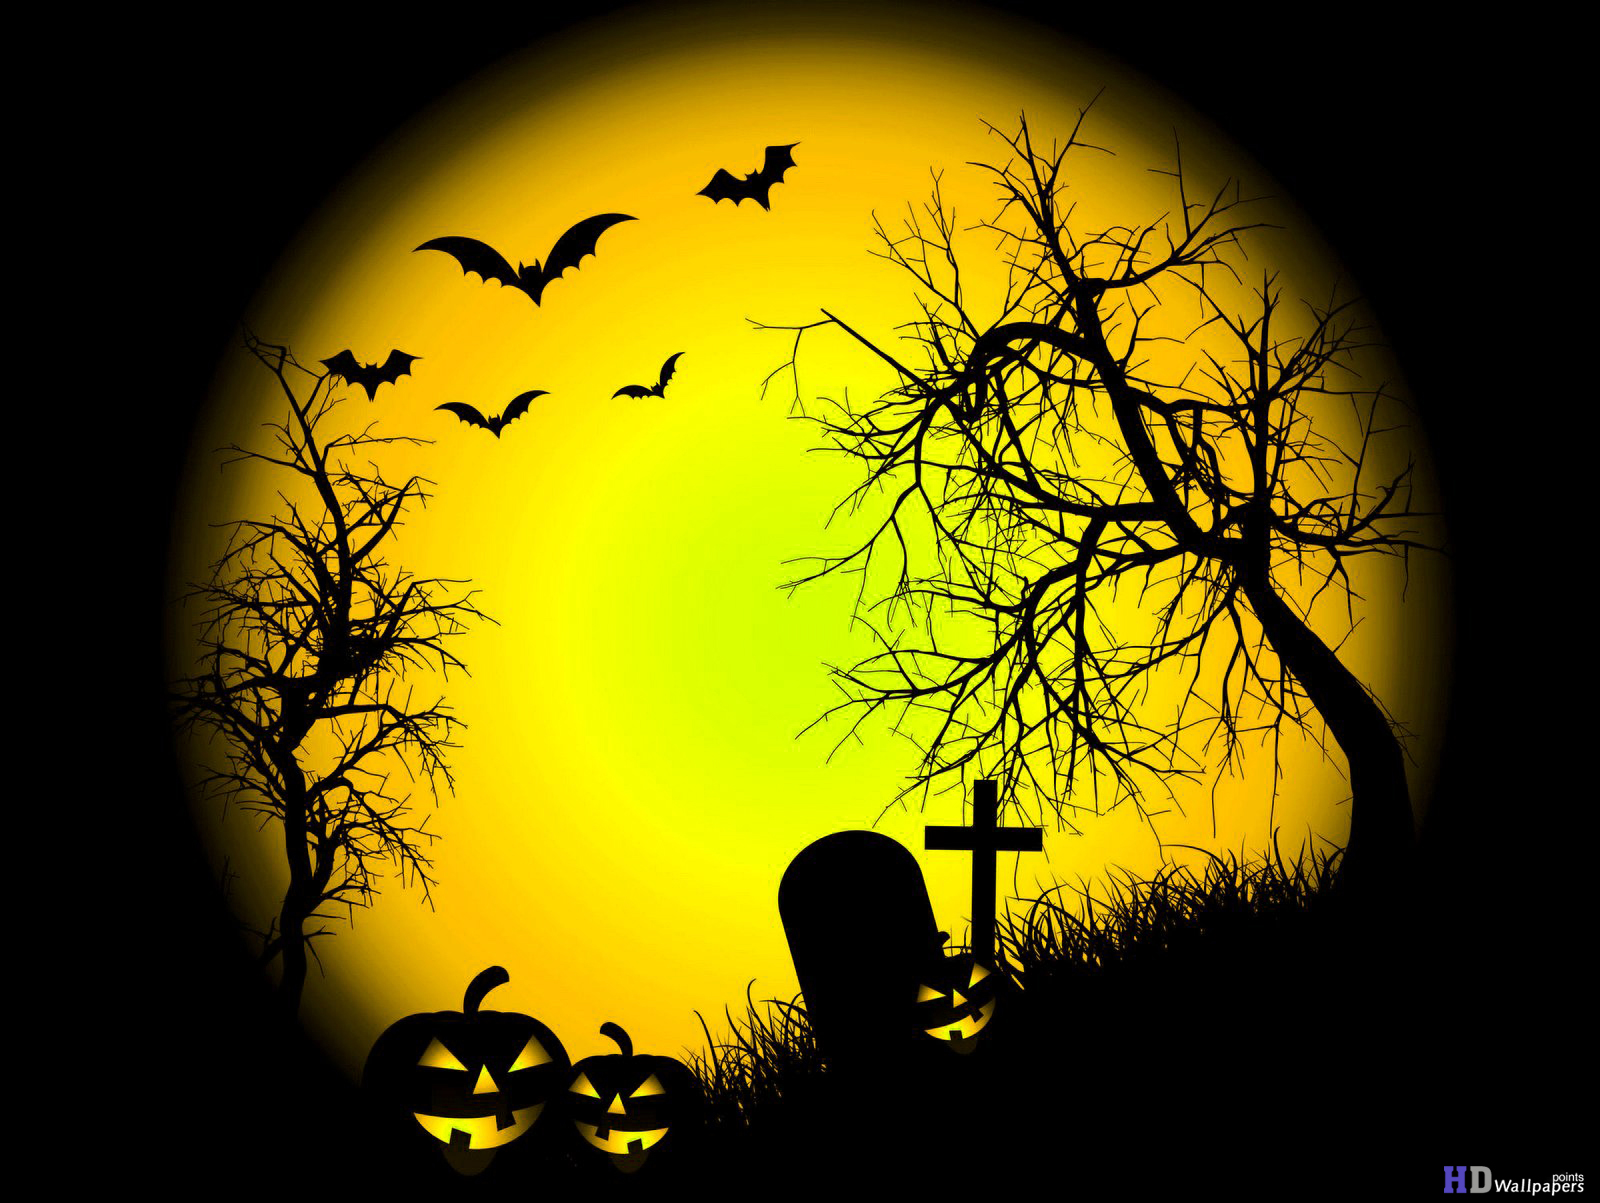 Halloween Desktop Background HD Wallpaper 1600x1203